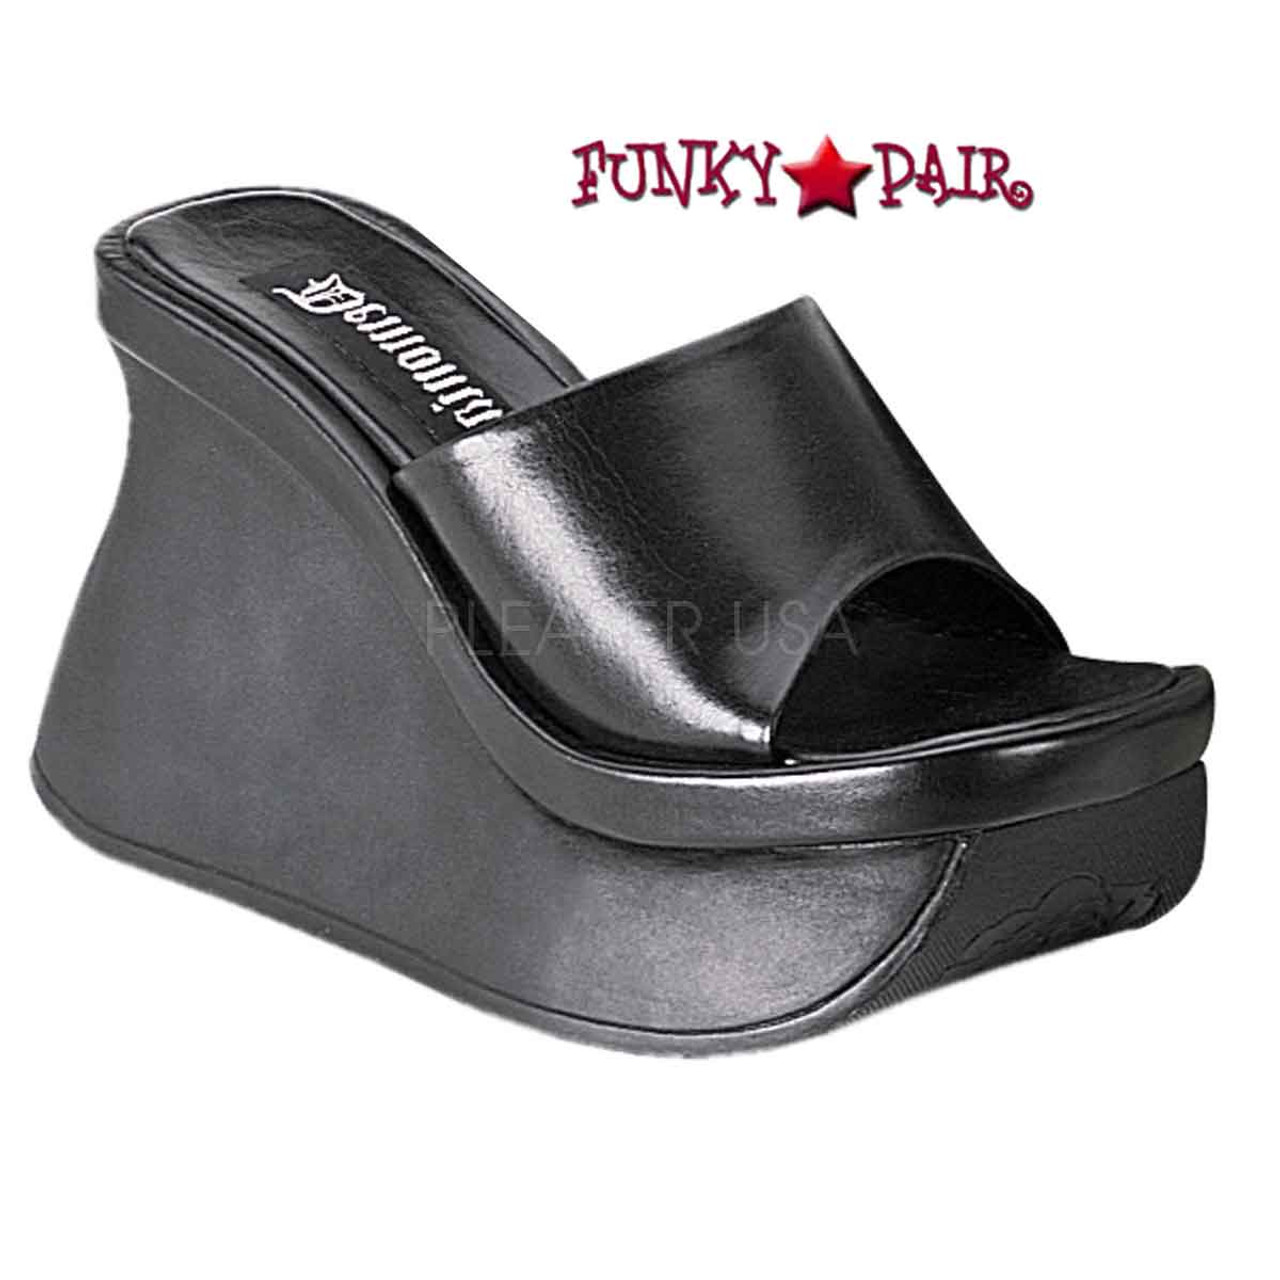 067d2d4ac Pace-01, Platform Wedged Sandals color black faux leather Brand Demonia  Shoes